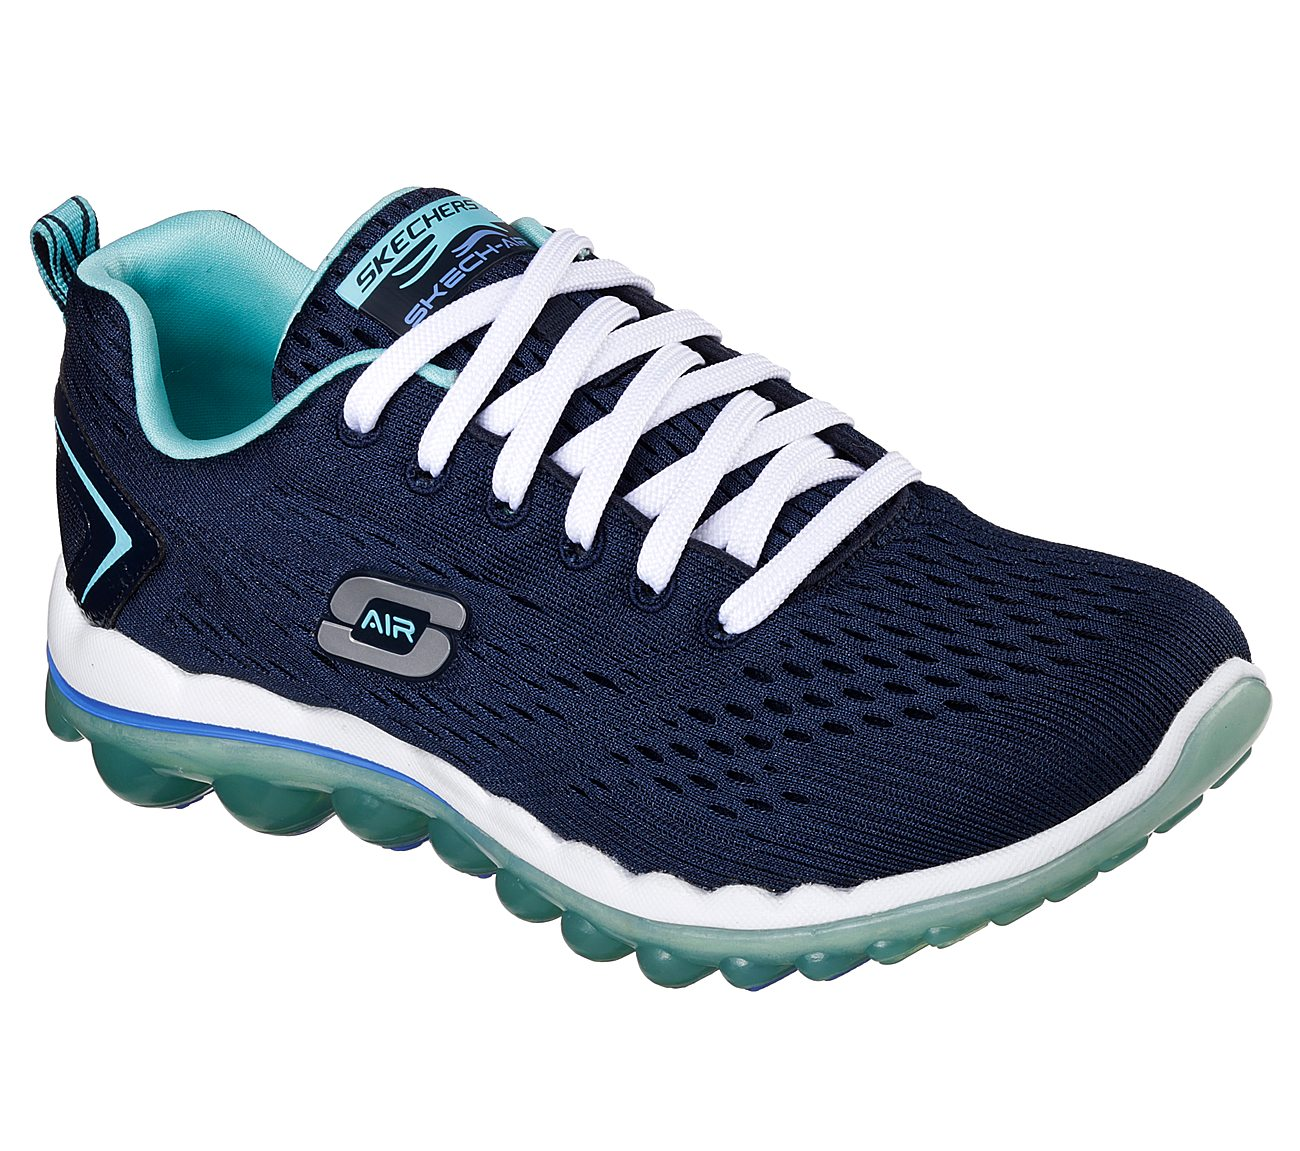 **Skechers Skech-Air 2.0 Athletic Shoes - Women's Size 8 Navy